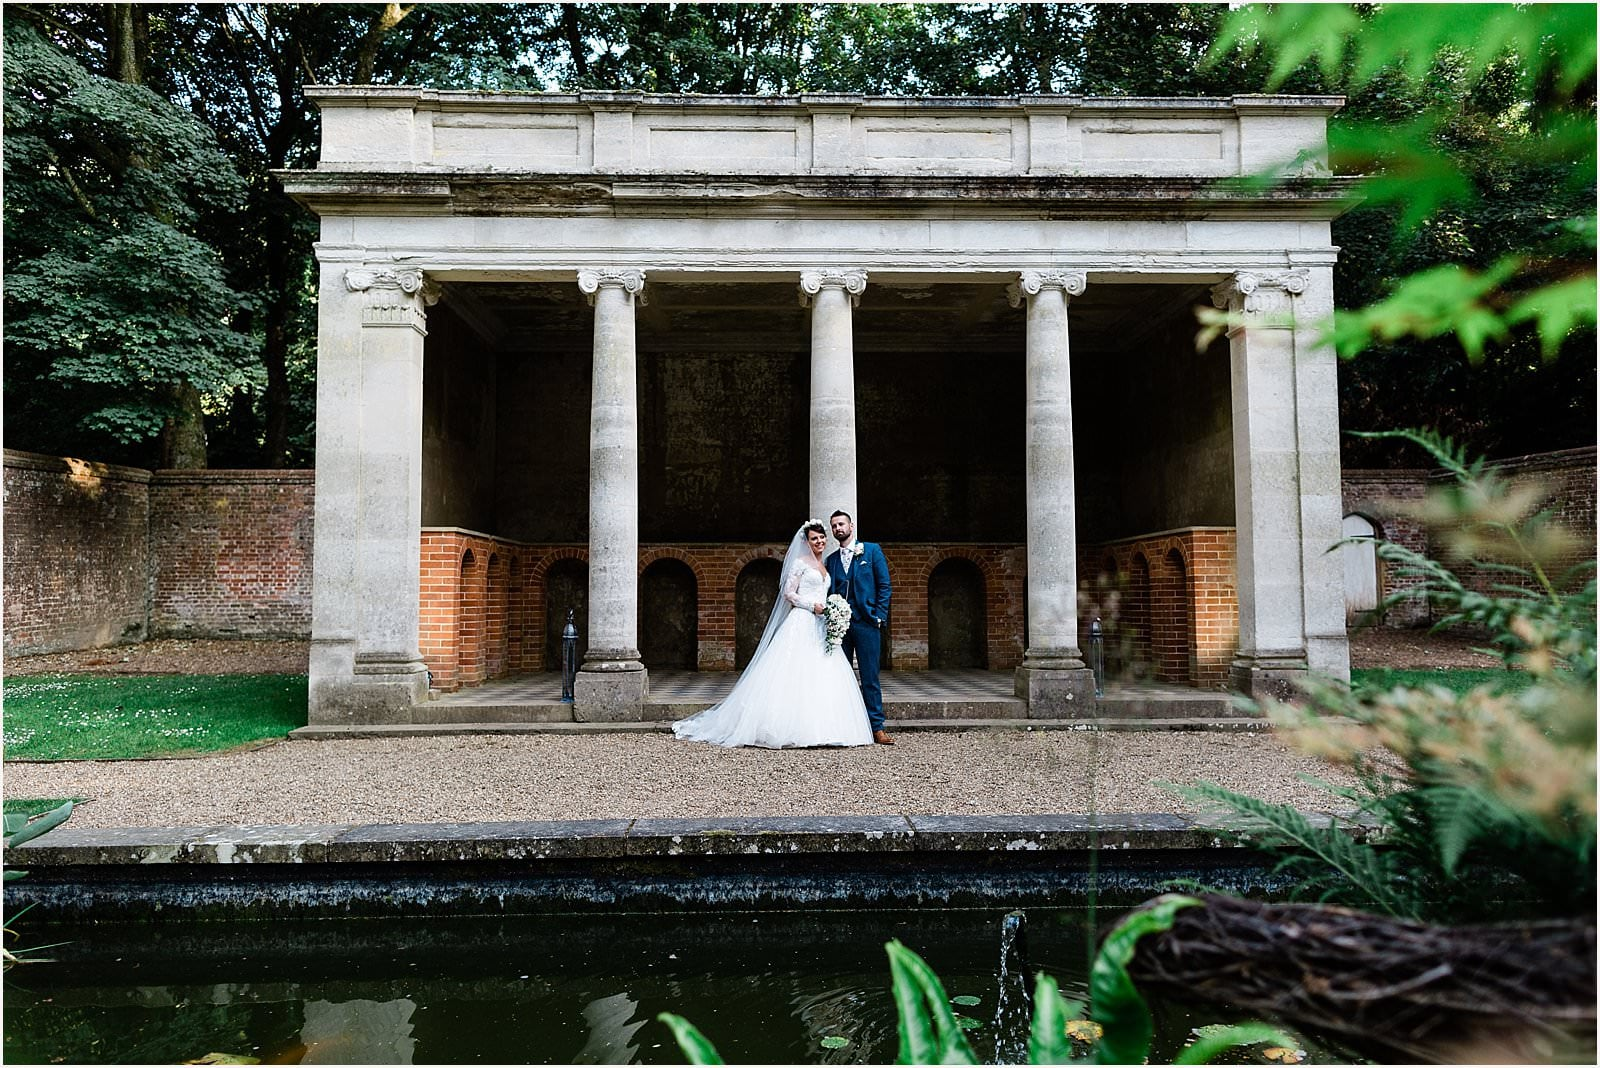 Wotton House Wedding - Justine + Rob's stunning wedding 42